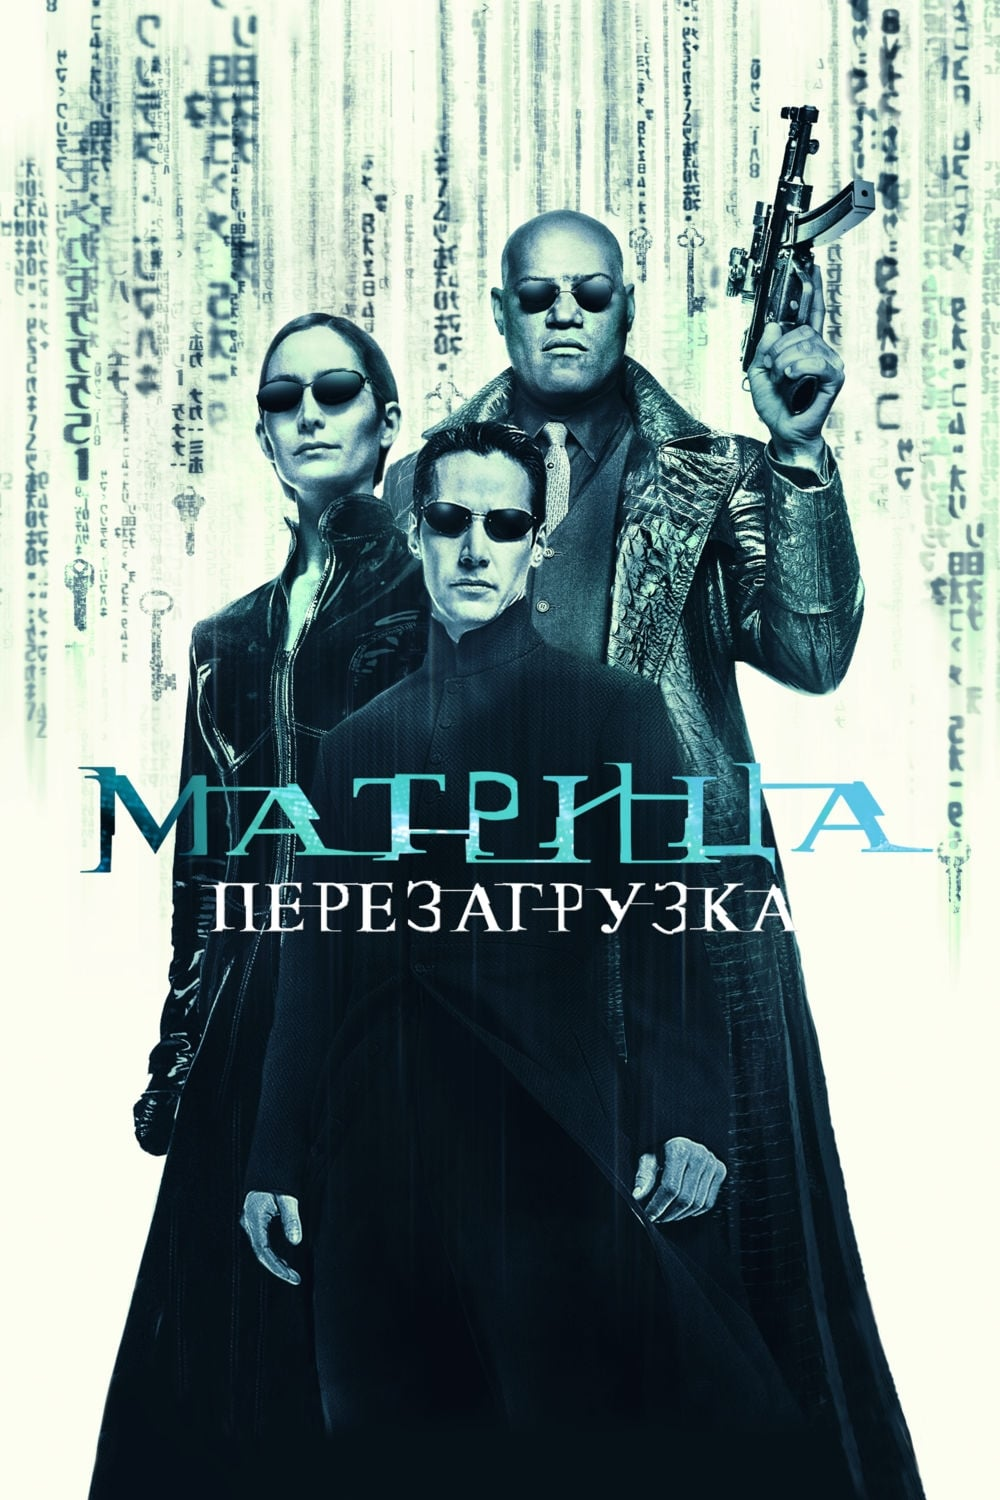 film review matrix reloaded Hacker neo (reeves) is now the flying and indestructible âoneâ within the matrix and he must find a way to save zion (human dive on real earth) from an impending.